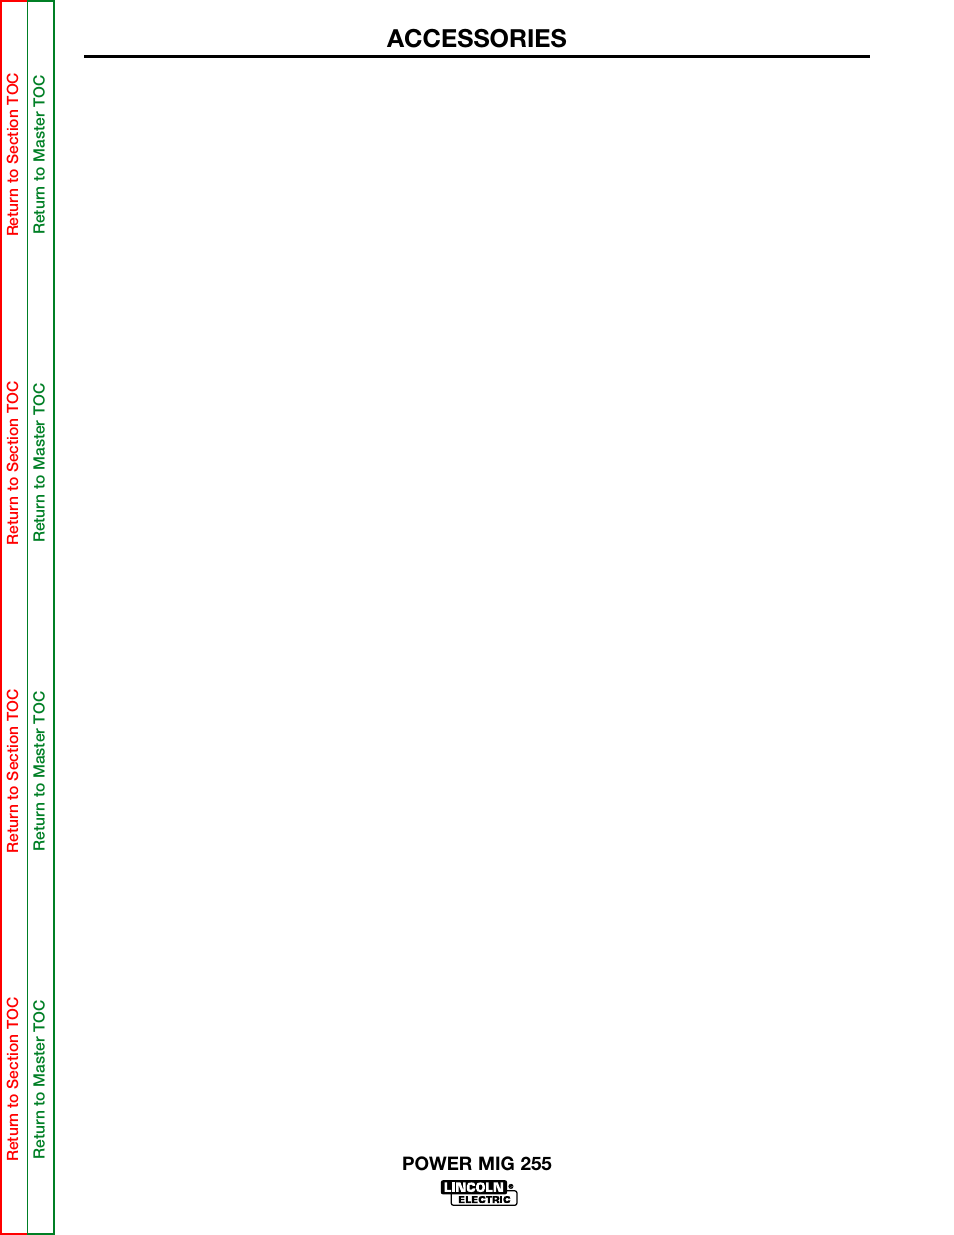 Described in operating instructions for timer kit, Accessories